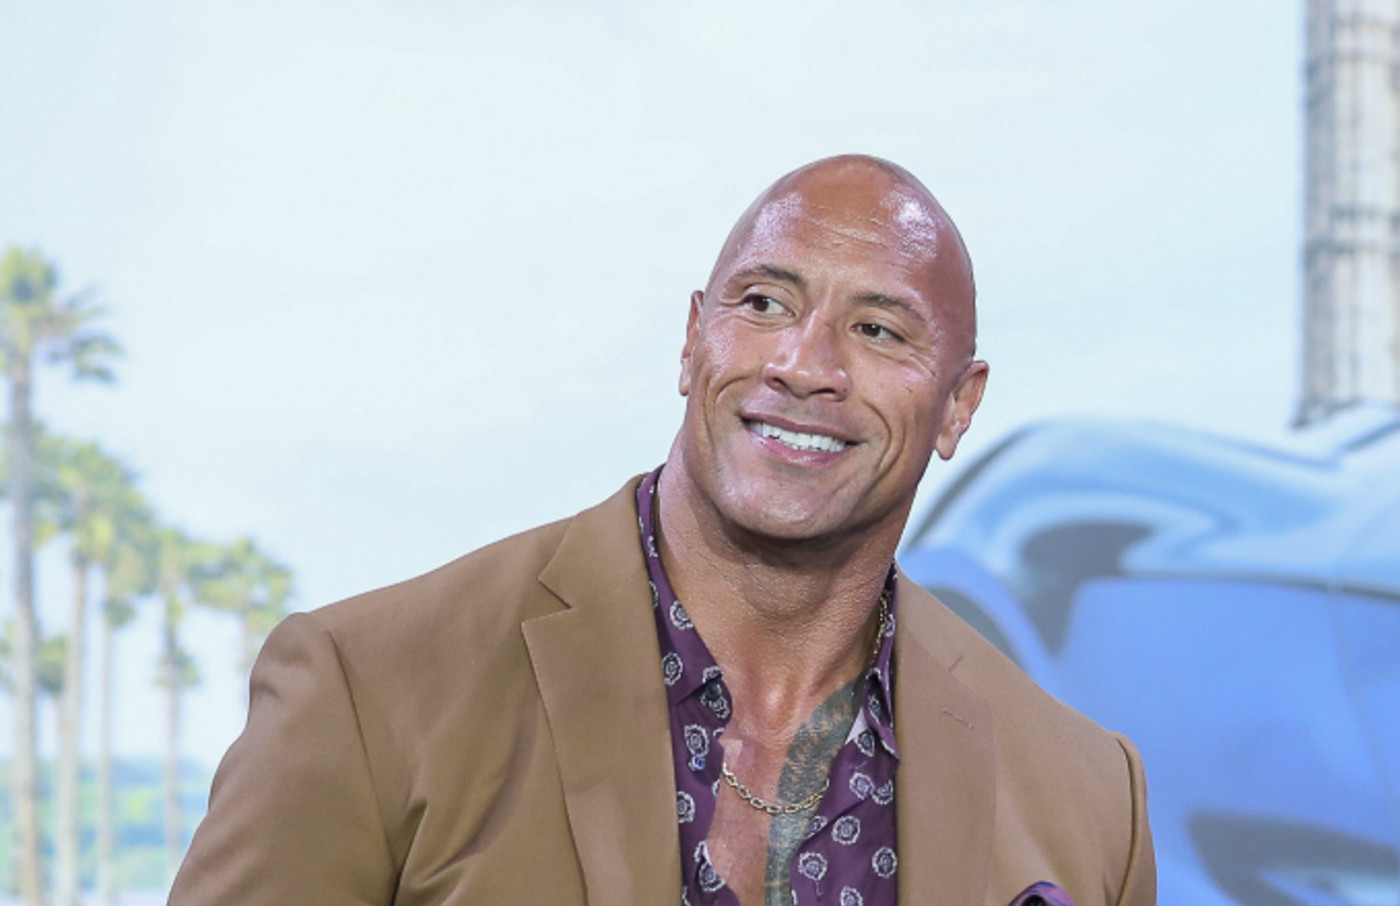 Actor Dwayne Johnson attends the 'Fast & Furious: Hobbs & Shaw' press conference